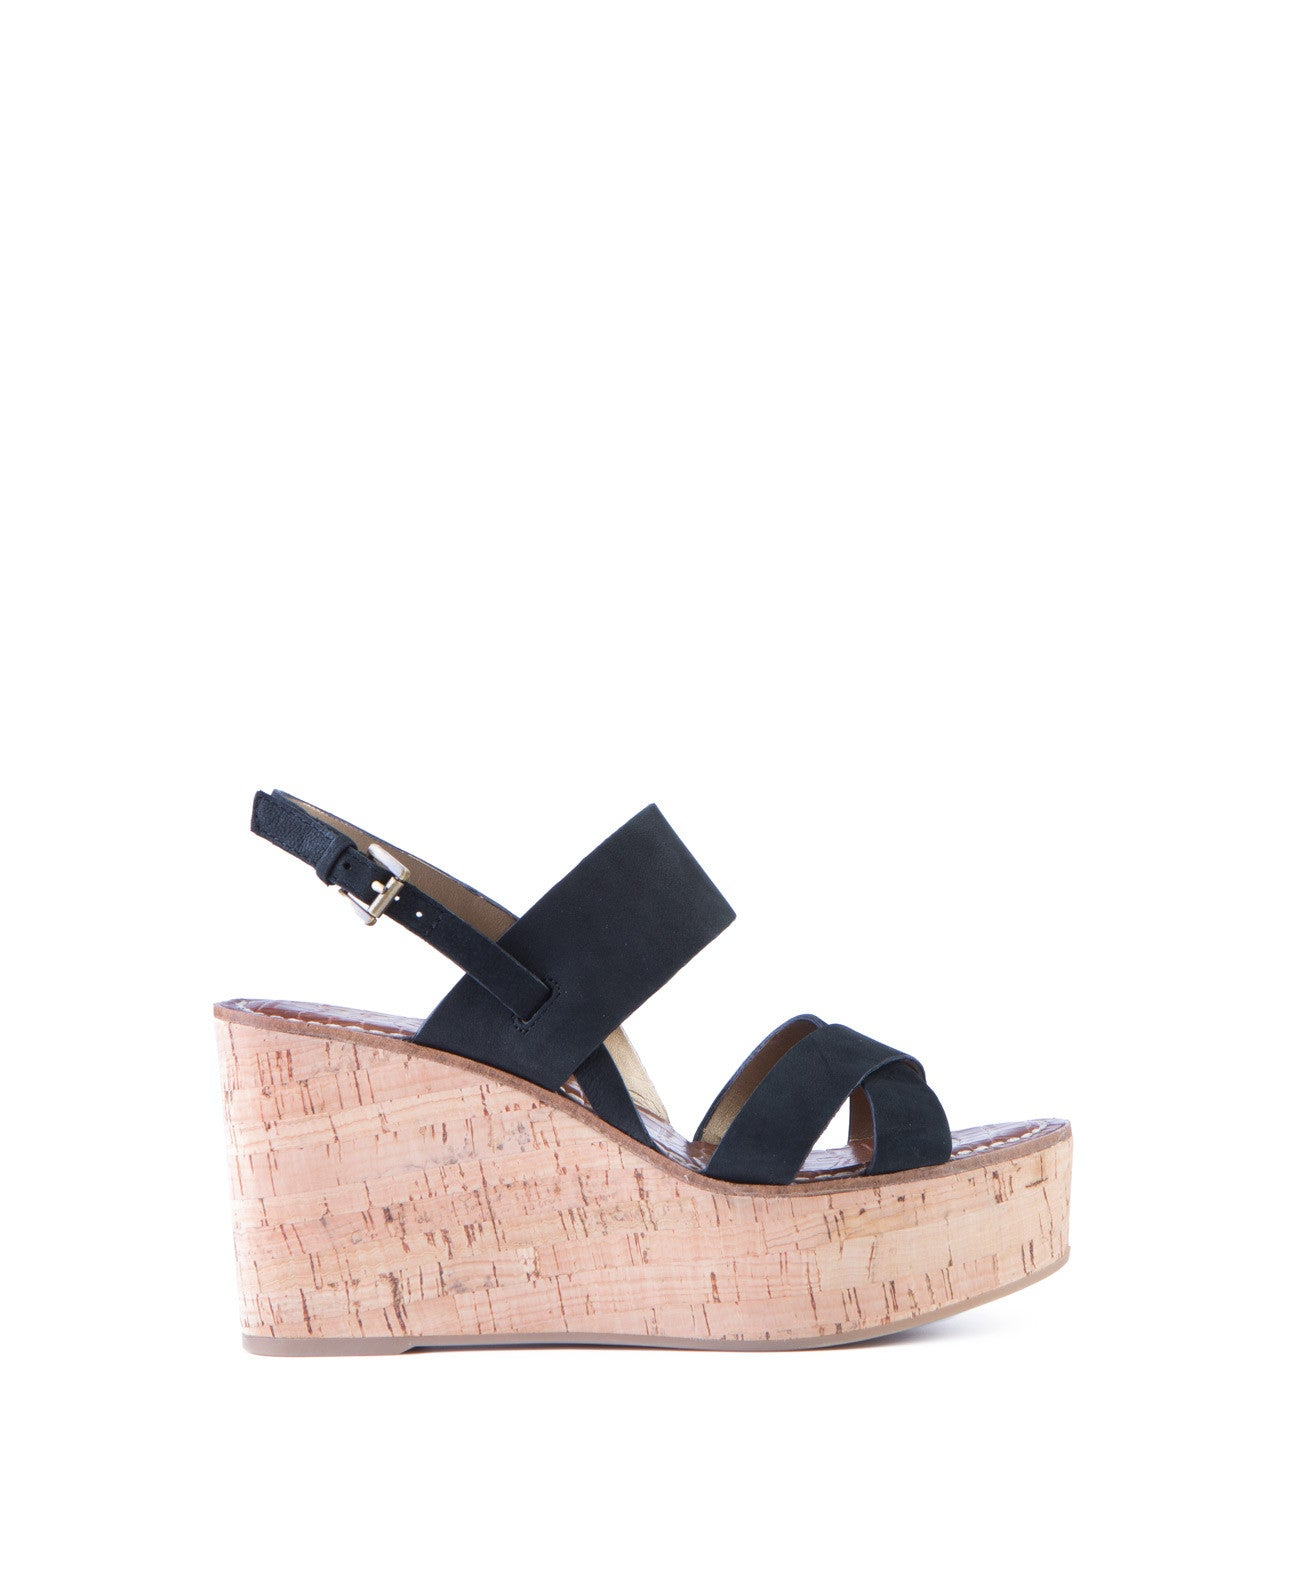 Destiny Cork Wedge - Koko & Palenki - 1